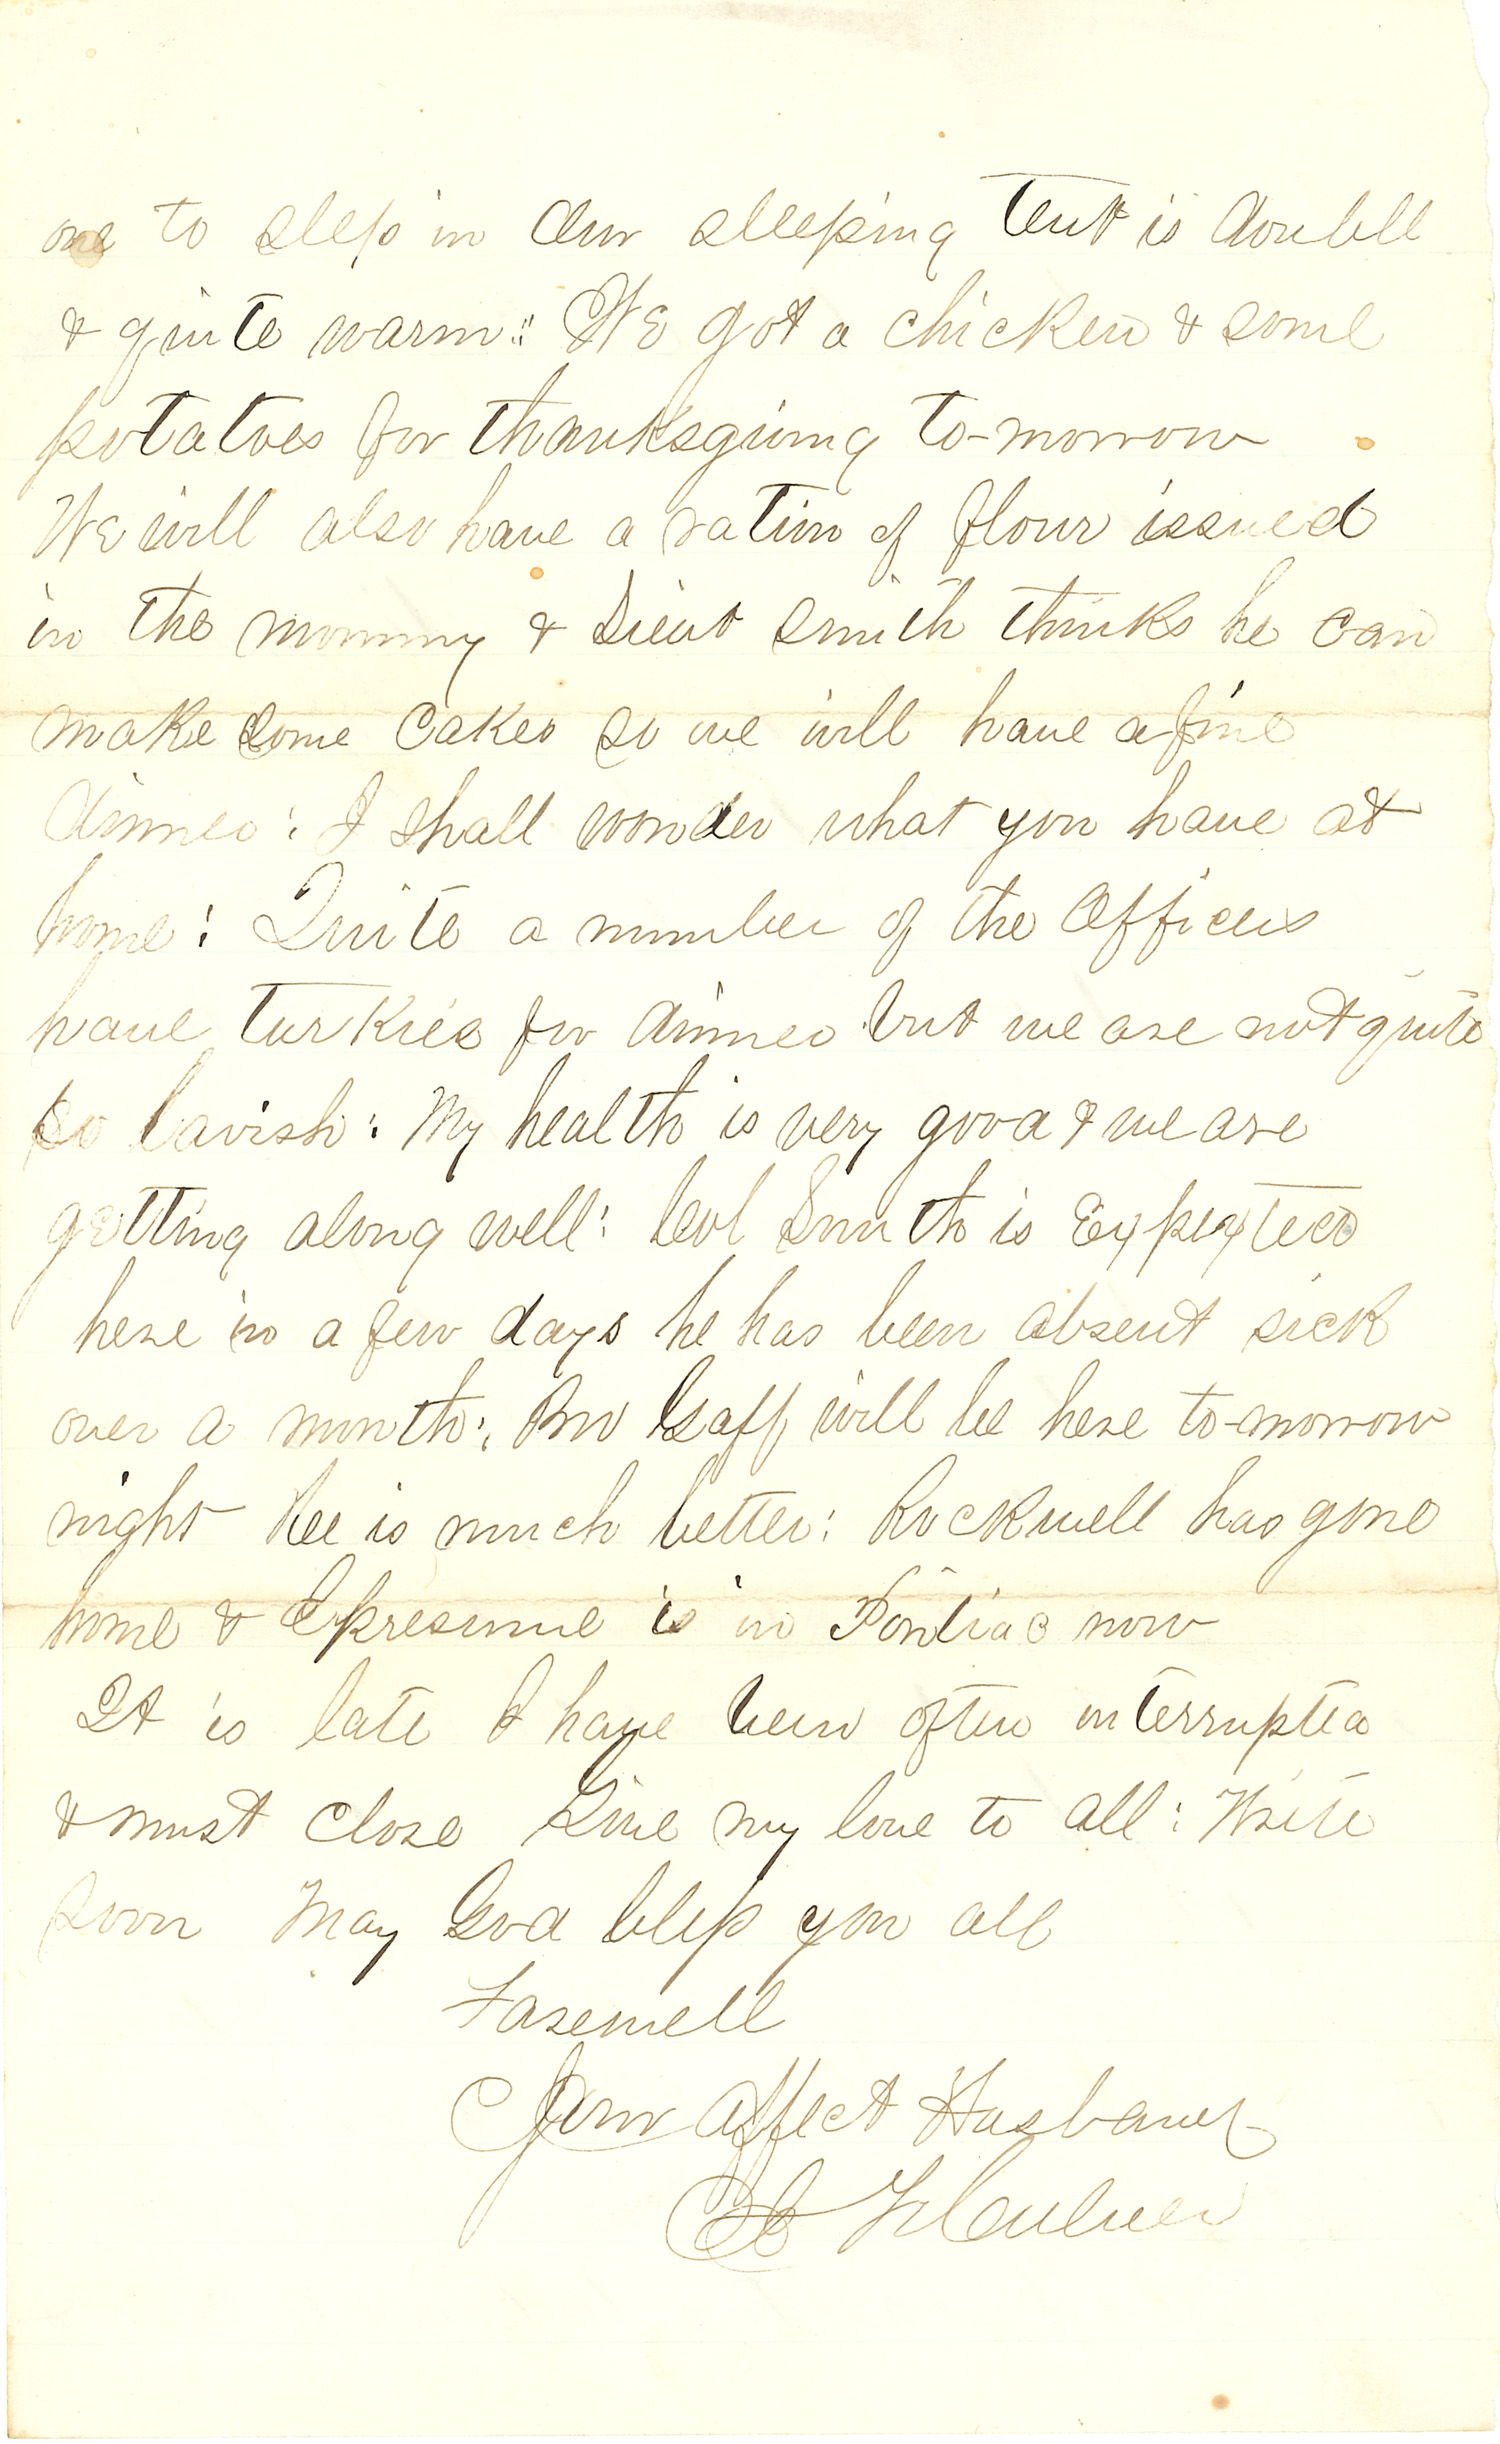 Joseph Culver Letter, November 26, 1862, Page 2